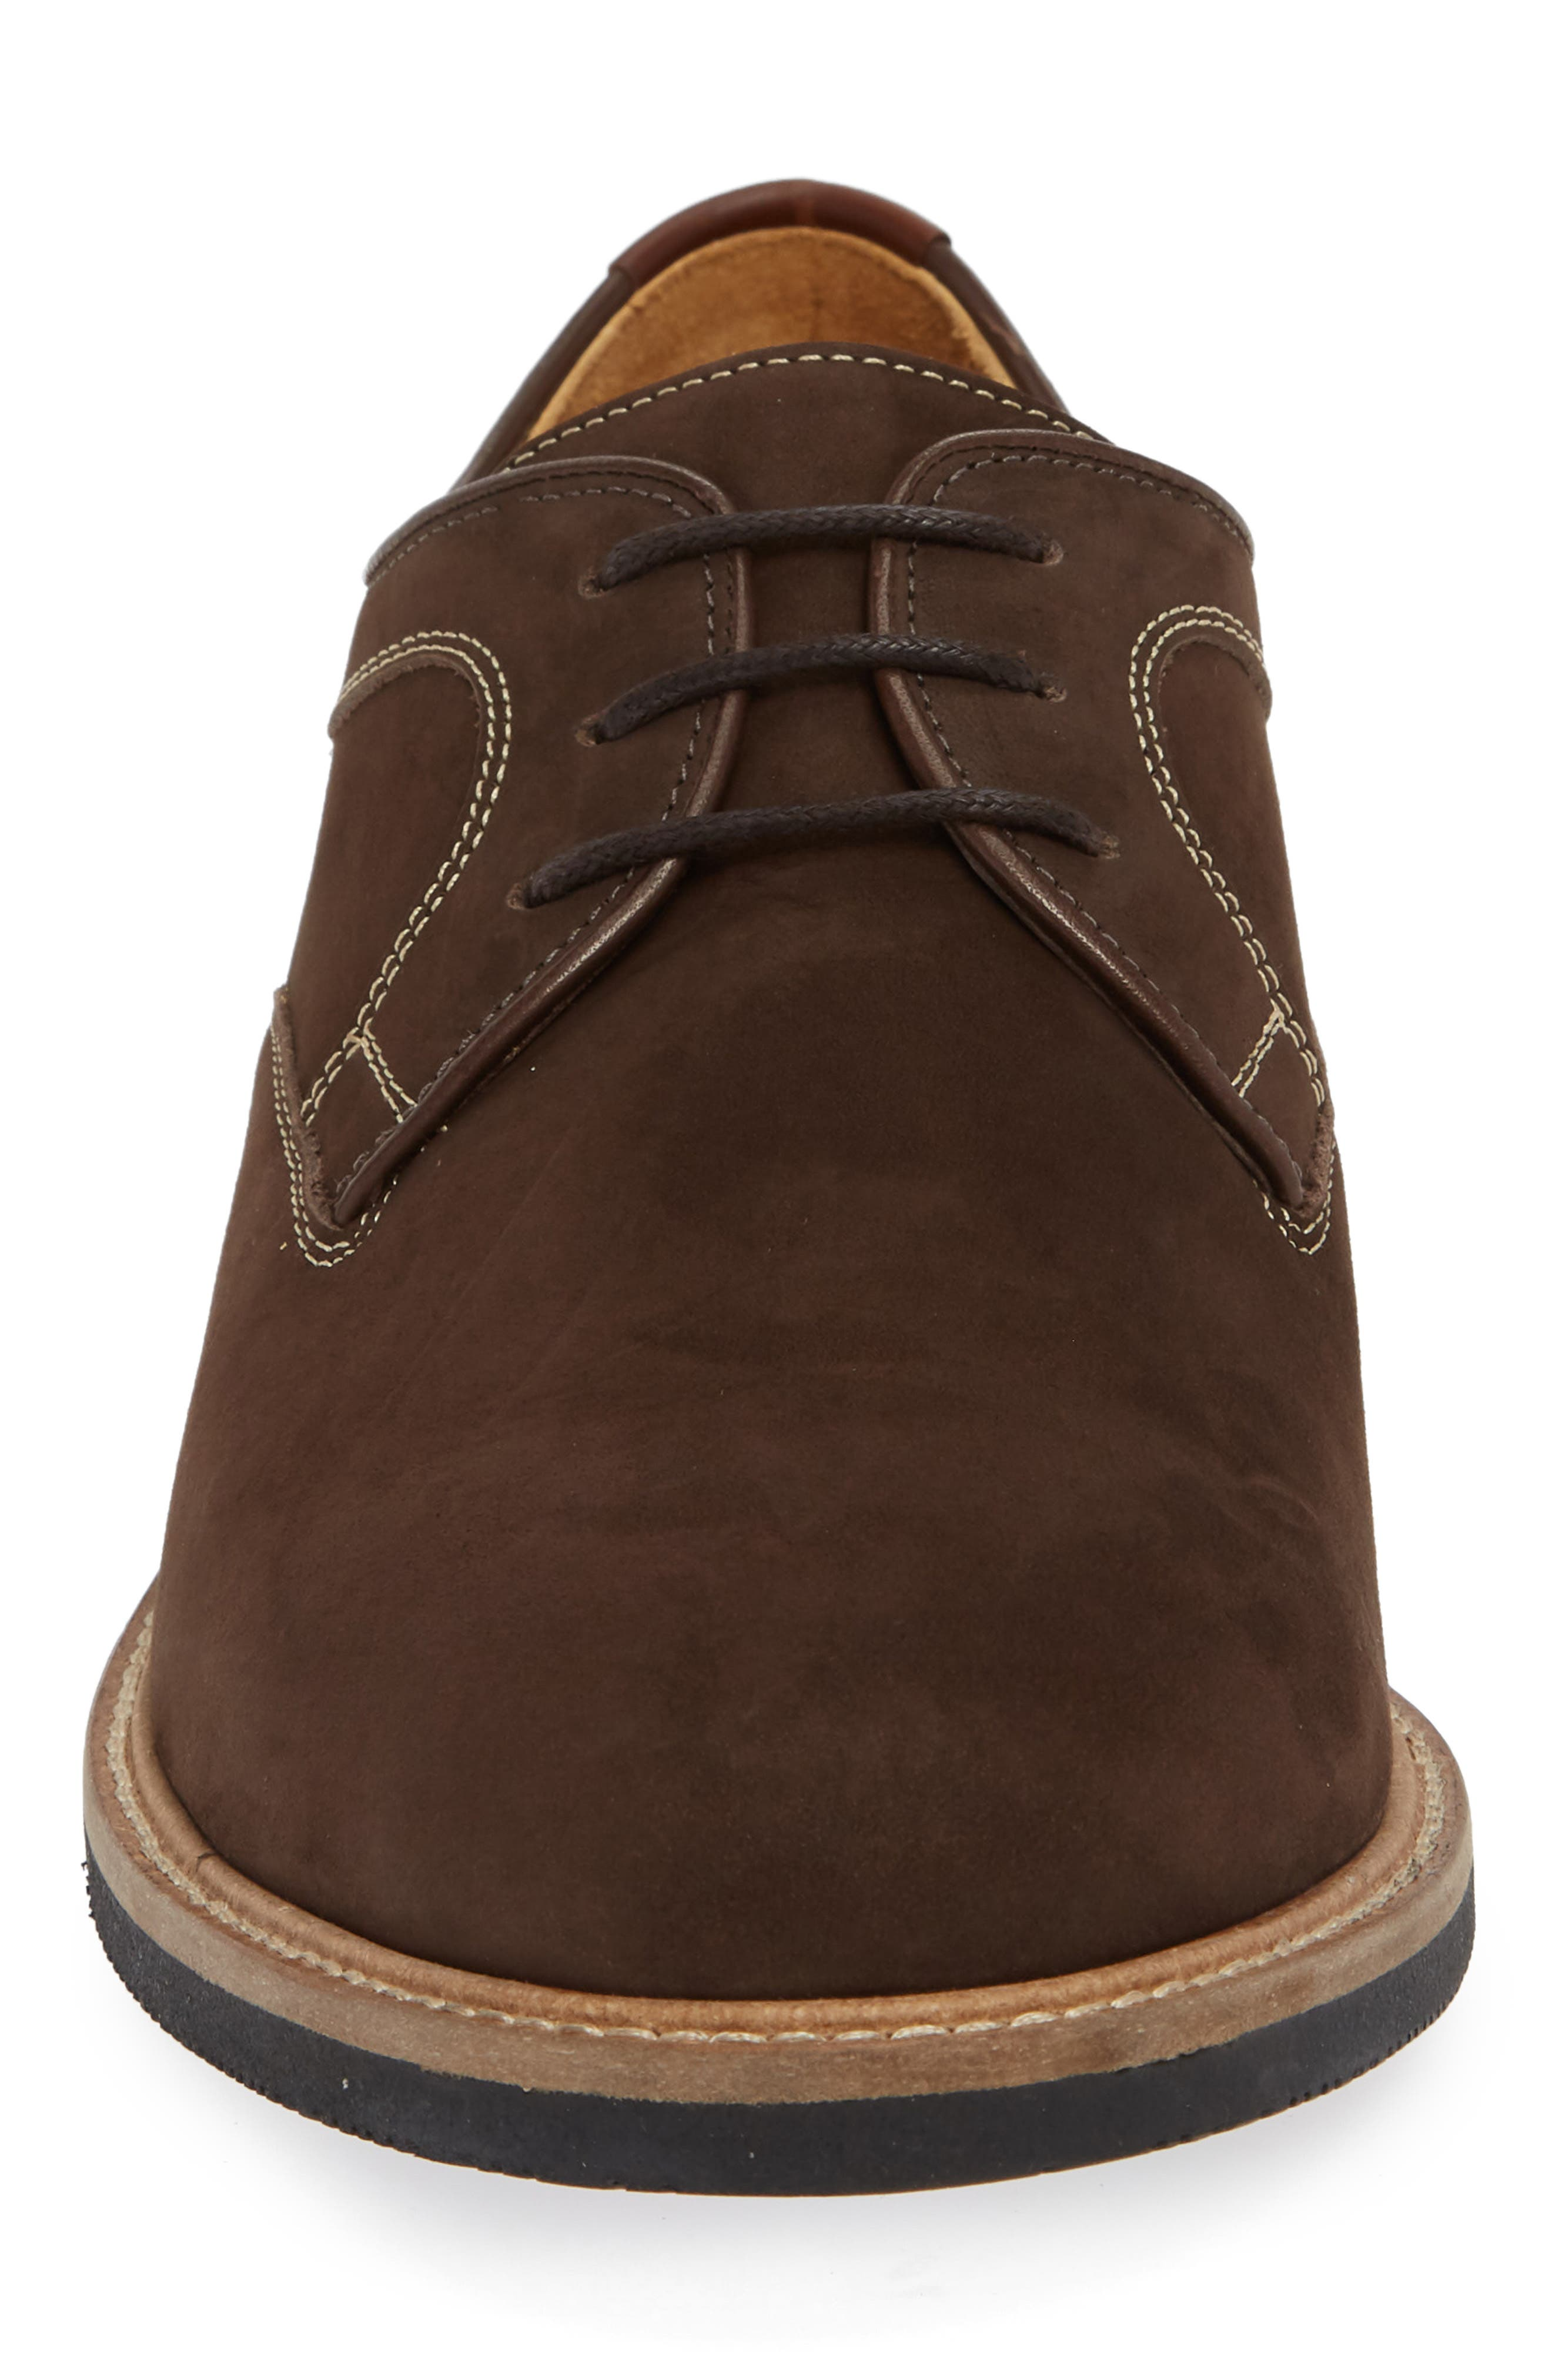 JOHNSTON & MURPHY,                             Barlow Plain Toe Derby,                             Alternate thumbnail 4, color,                             CHOCOLATE NUBUCK